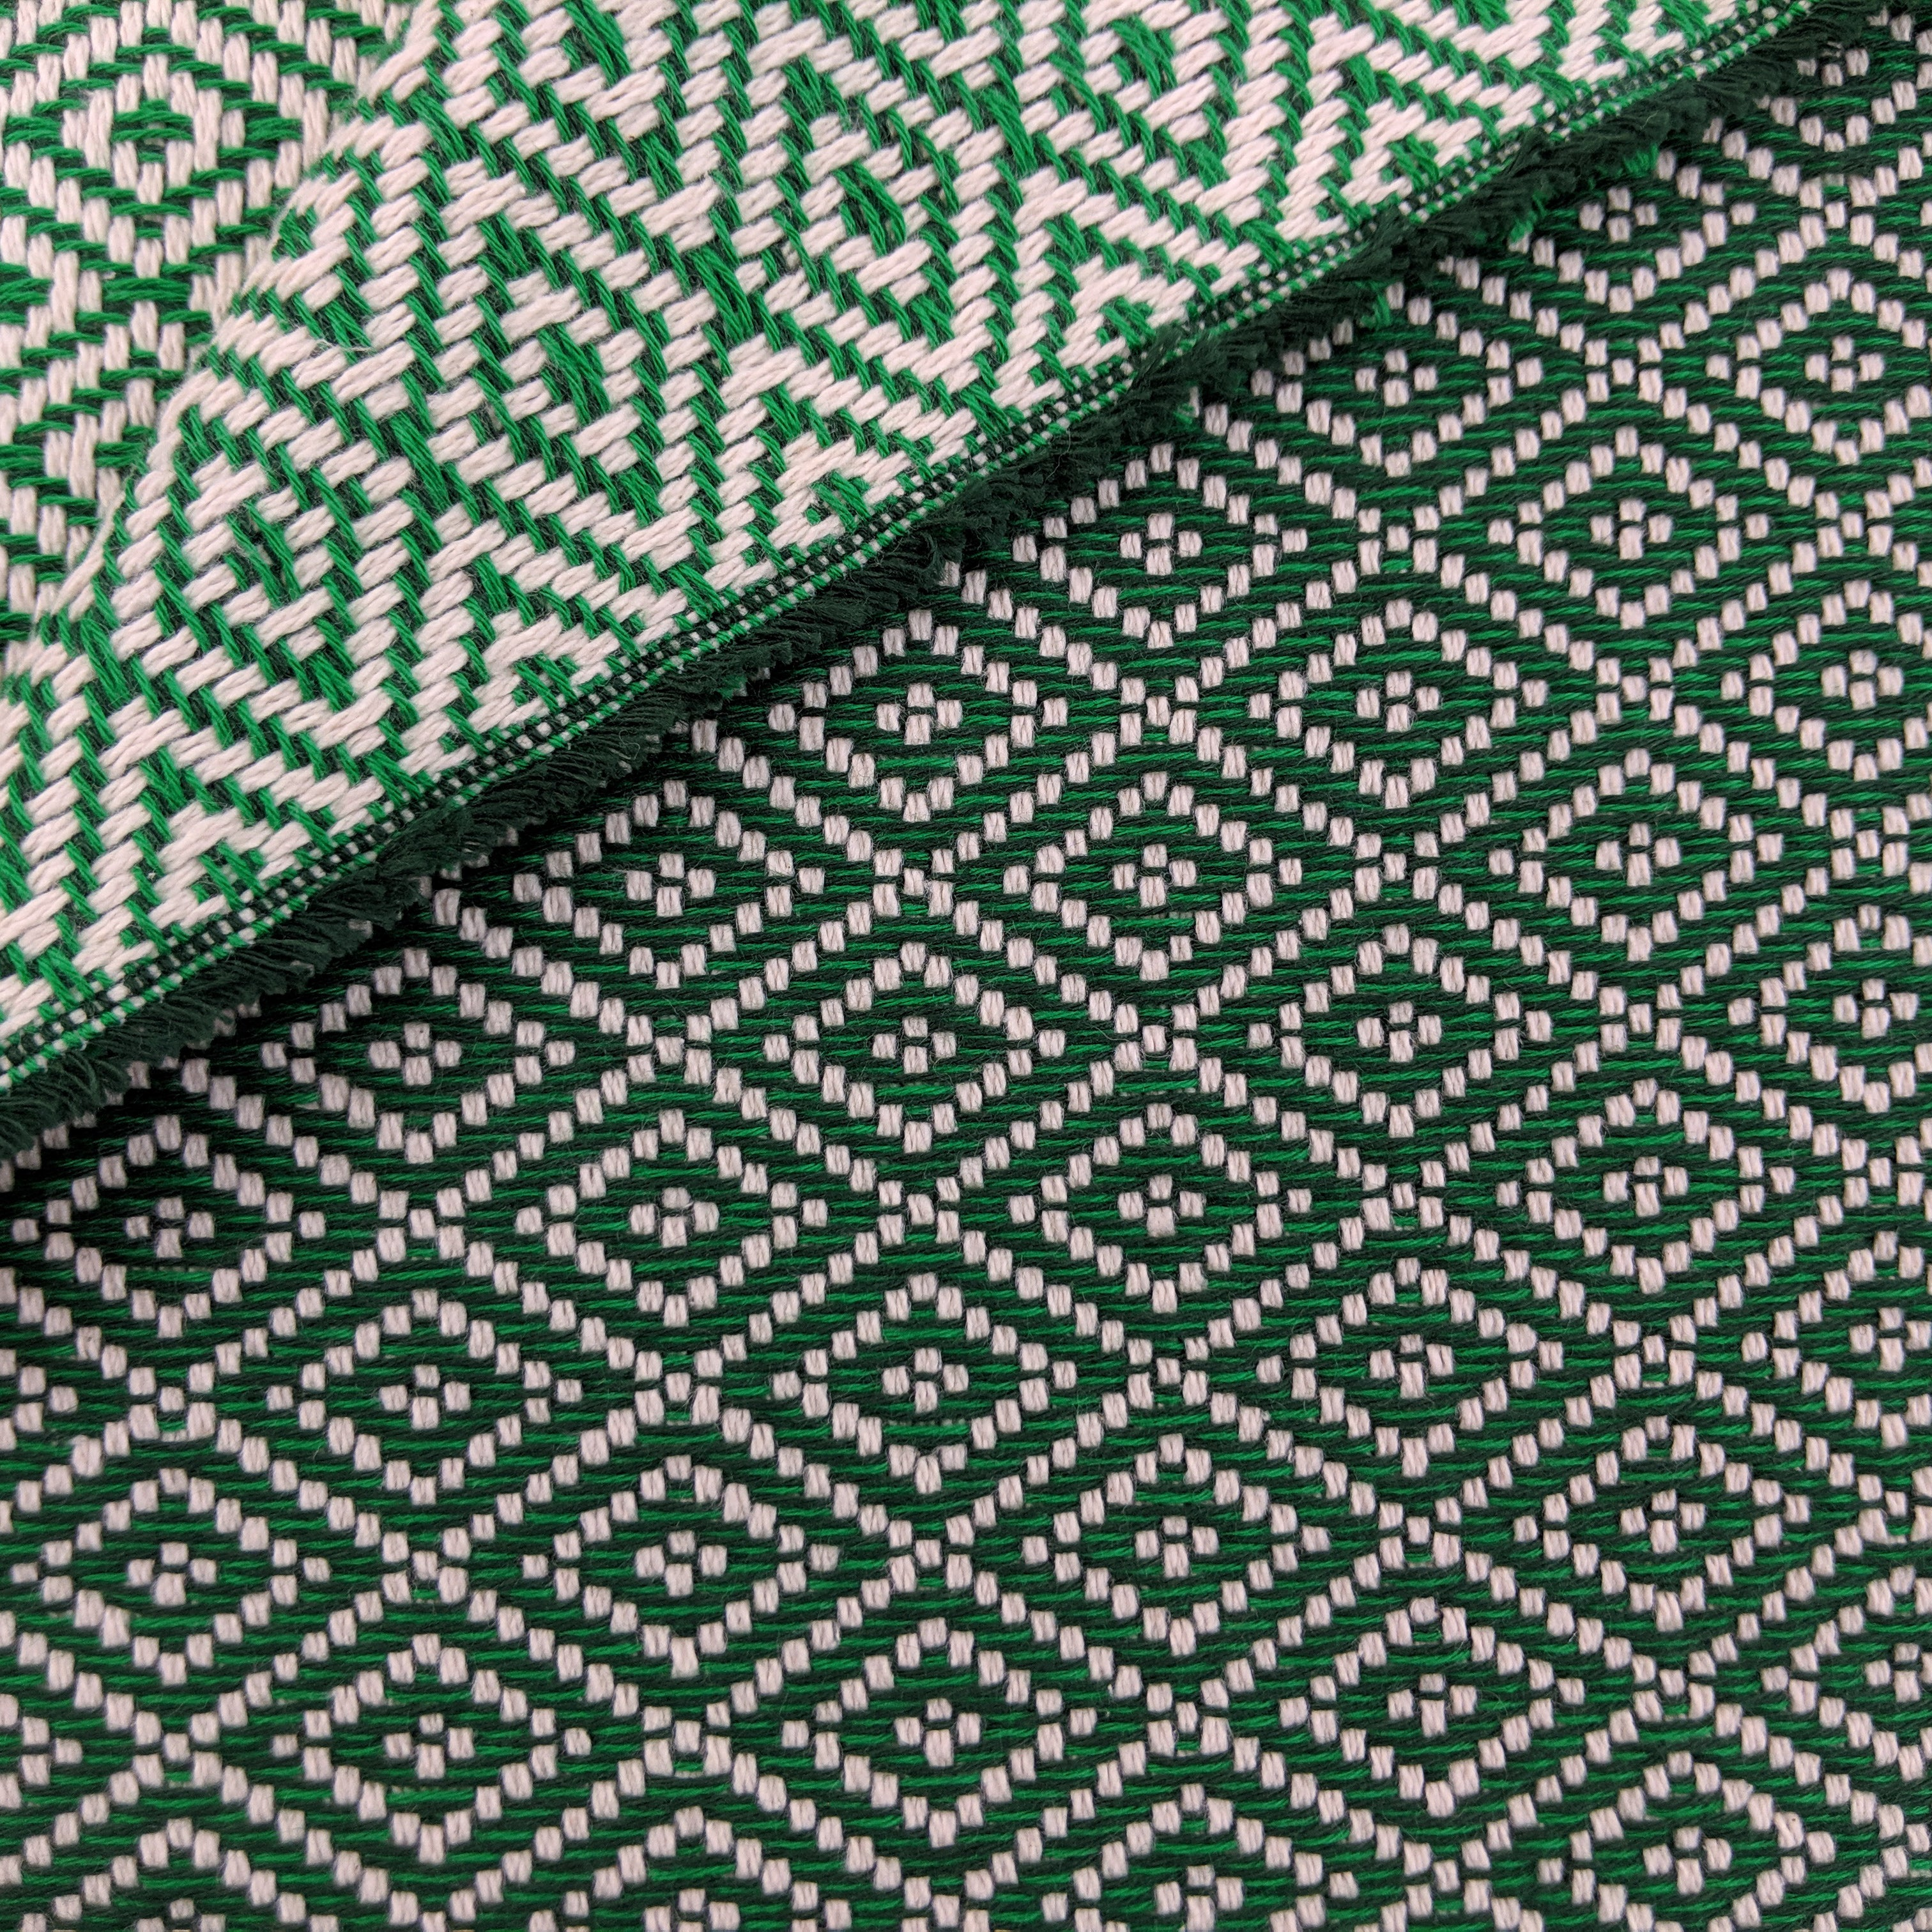 Green and dark green cotton throw with double lozenge pattern, close up